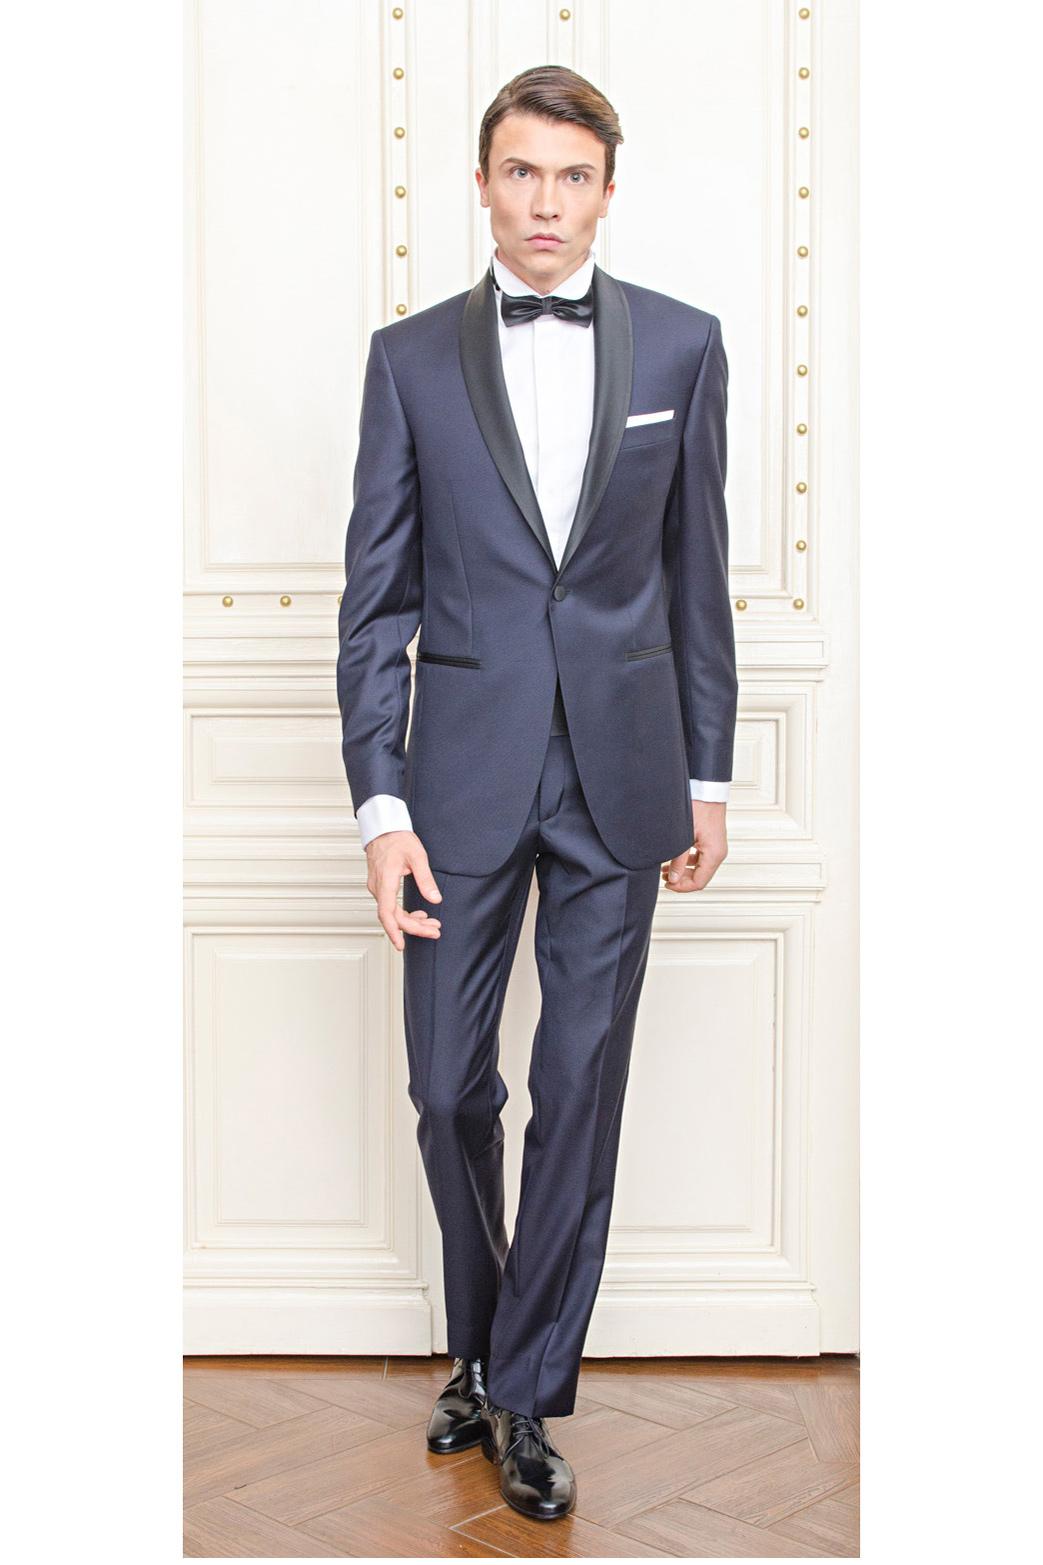 Shop the collection of men's suits on sale featuring modern fit suits, two button suits & classic business suits. Free shipping available on all orders.